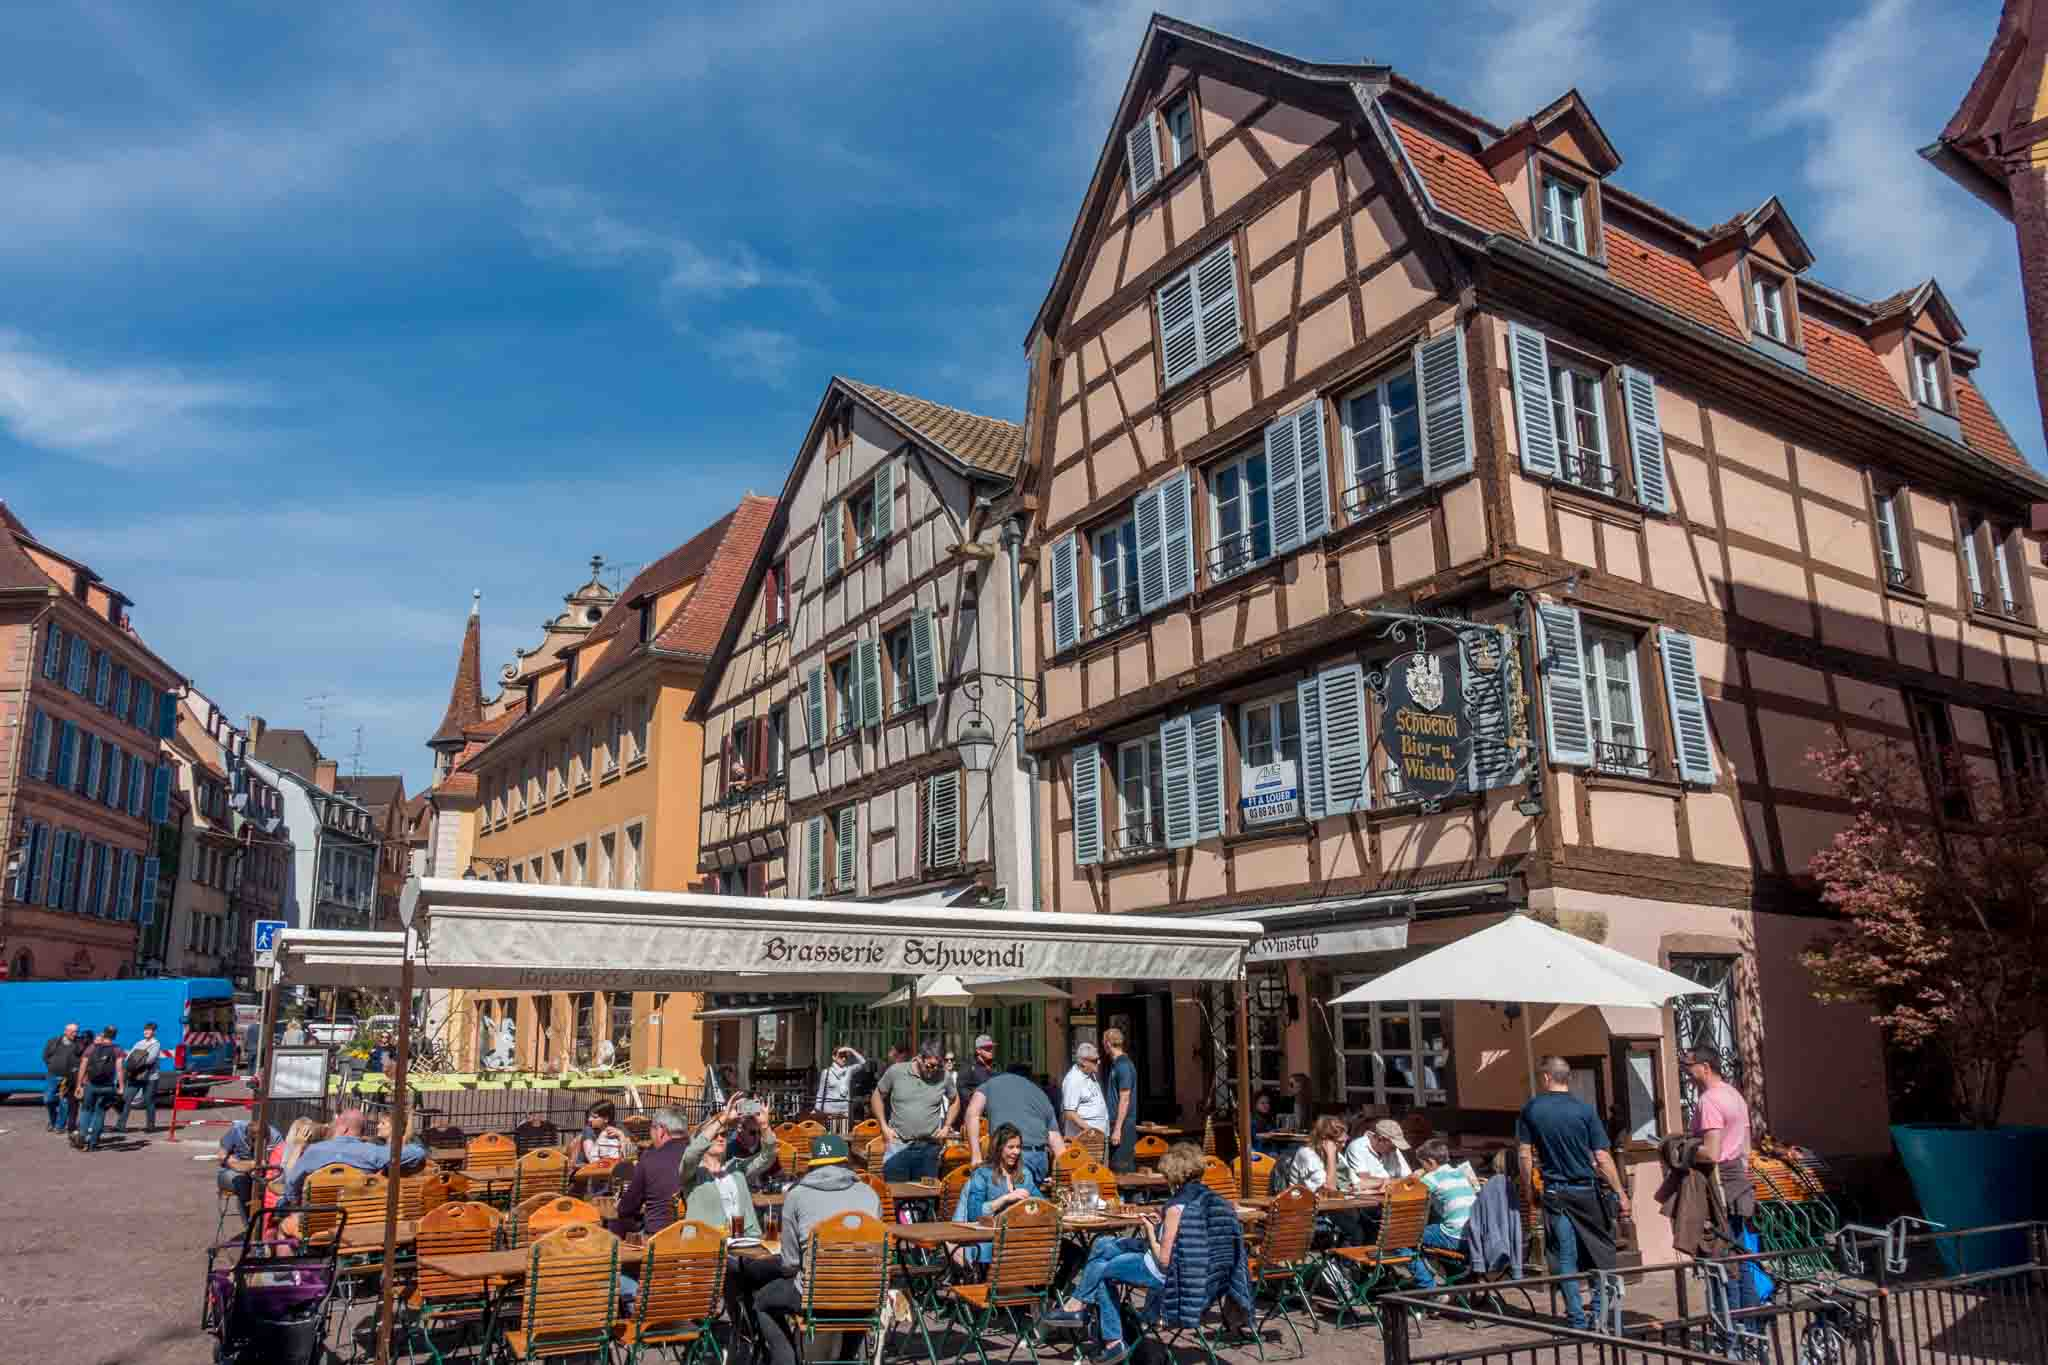 People eating at an outdoor cafe in a town square